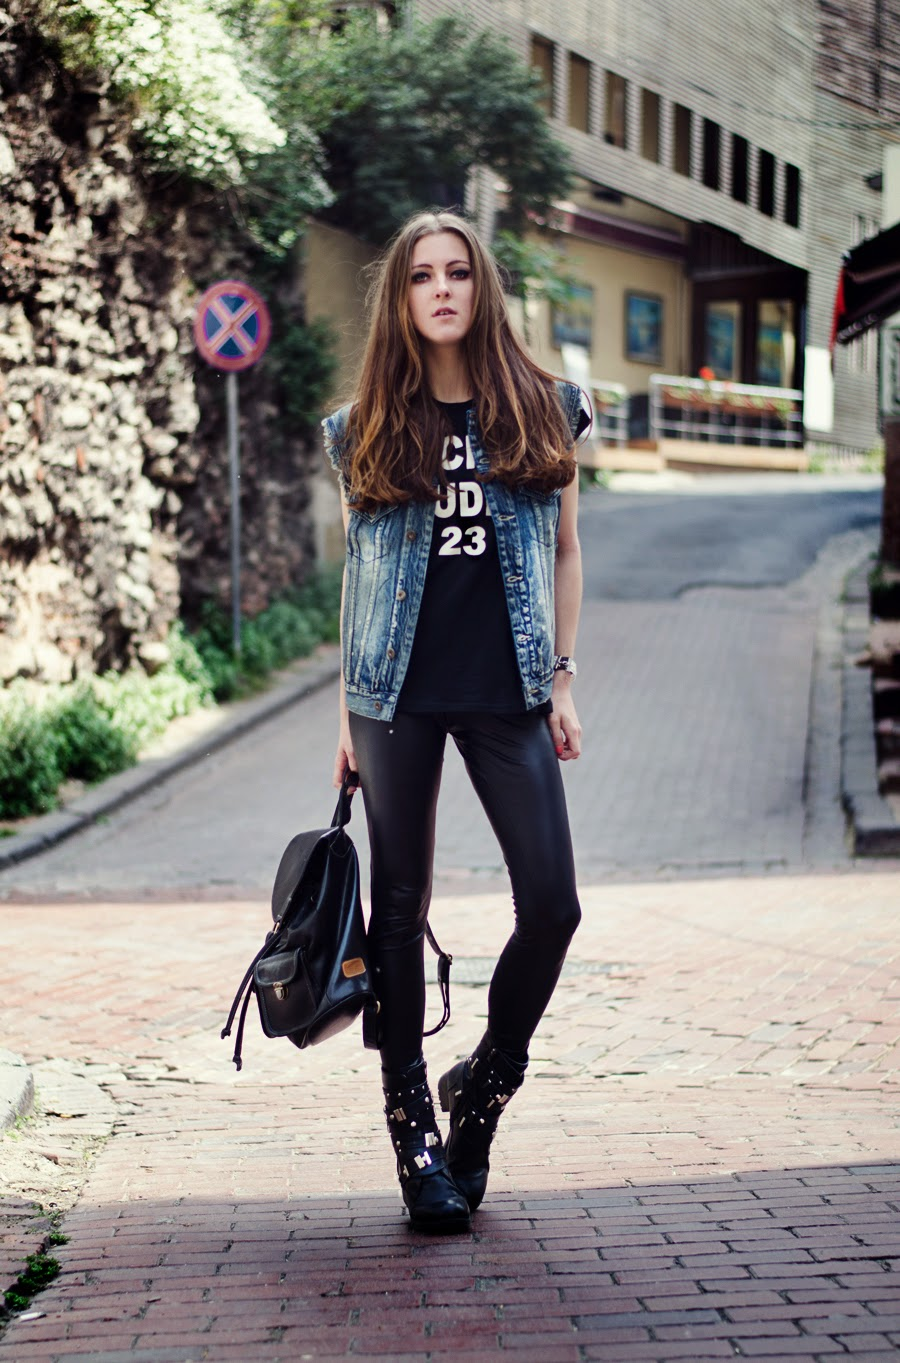 gypsy warrior, istanbul street style, rocker girl outfit , denim vest outfit, summer long hair , acne tee outfit, russian fashion blogger 2014